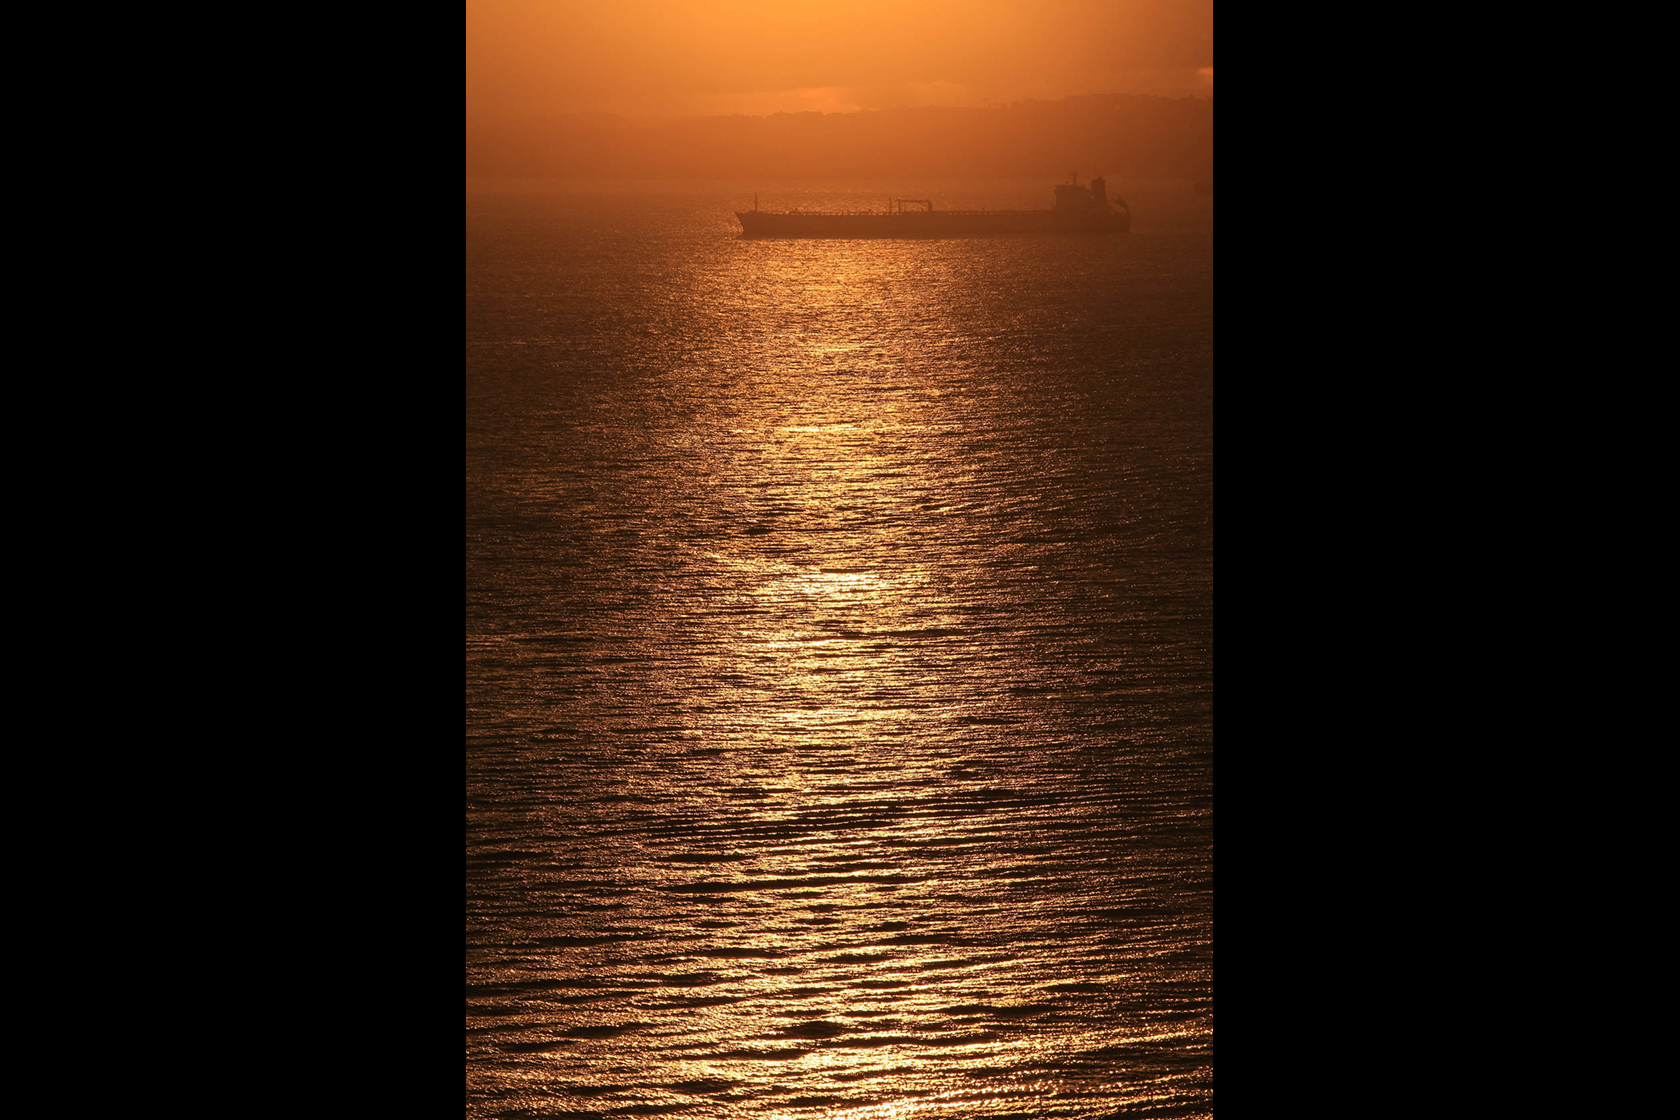 Sunset over ocean taken with Canon EOS 70D DSLR camera